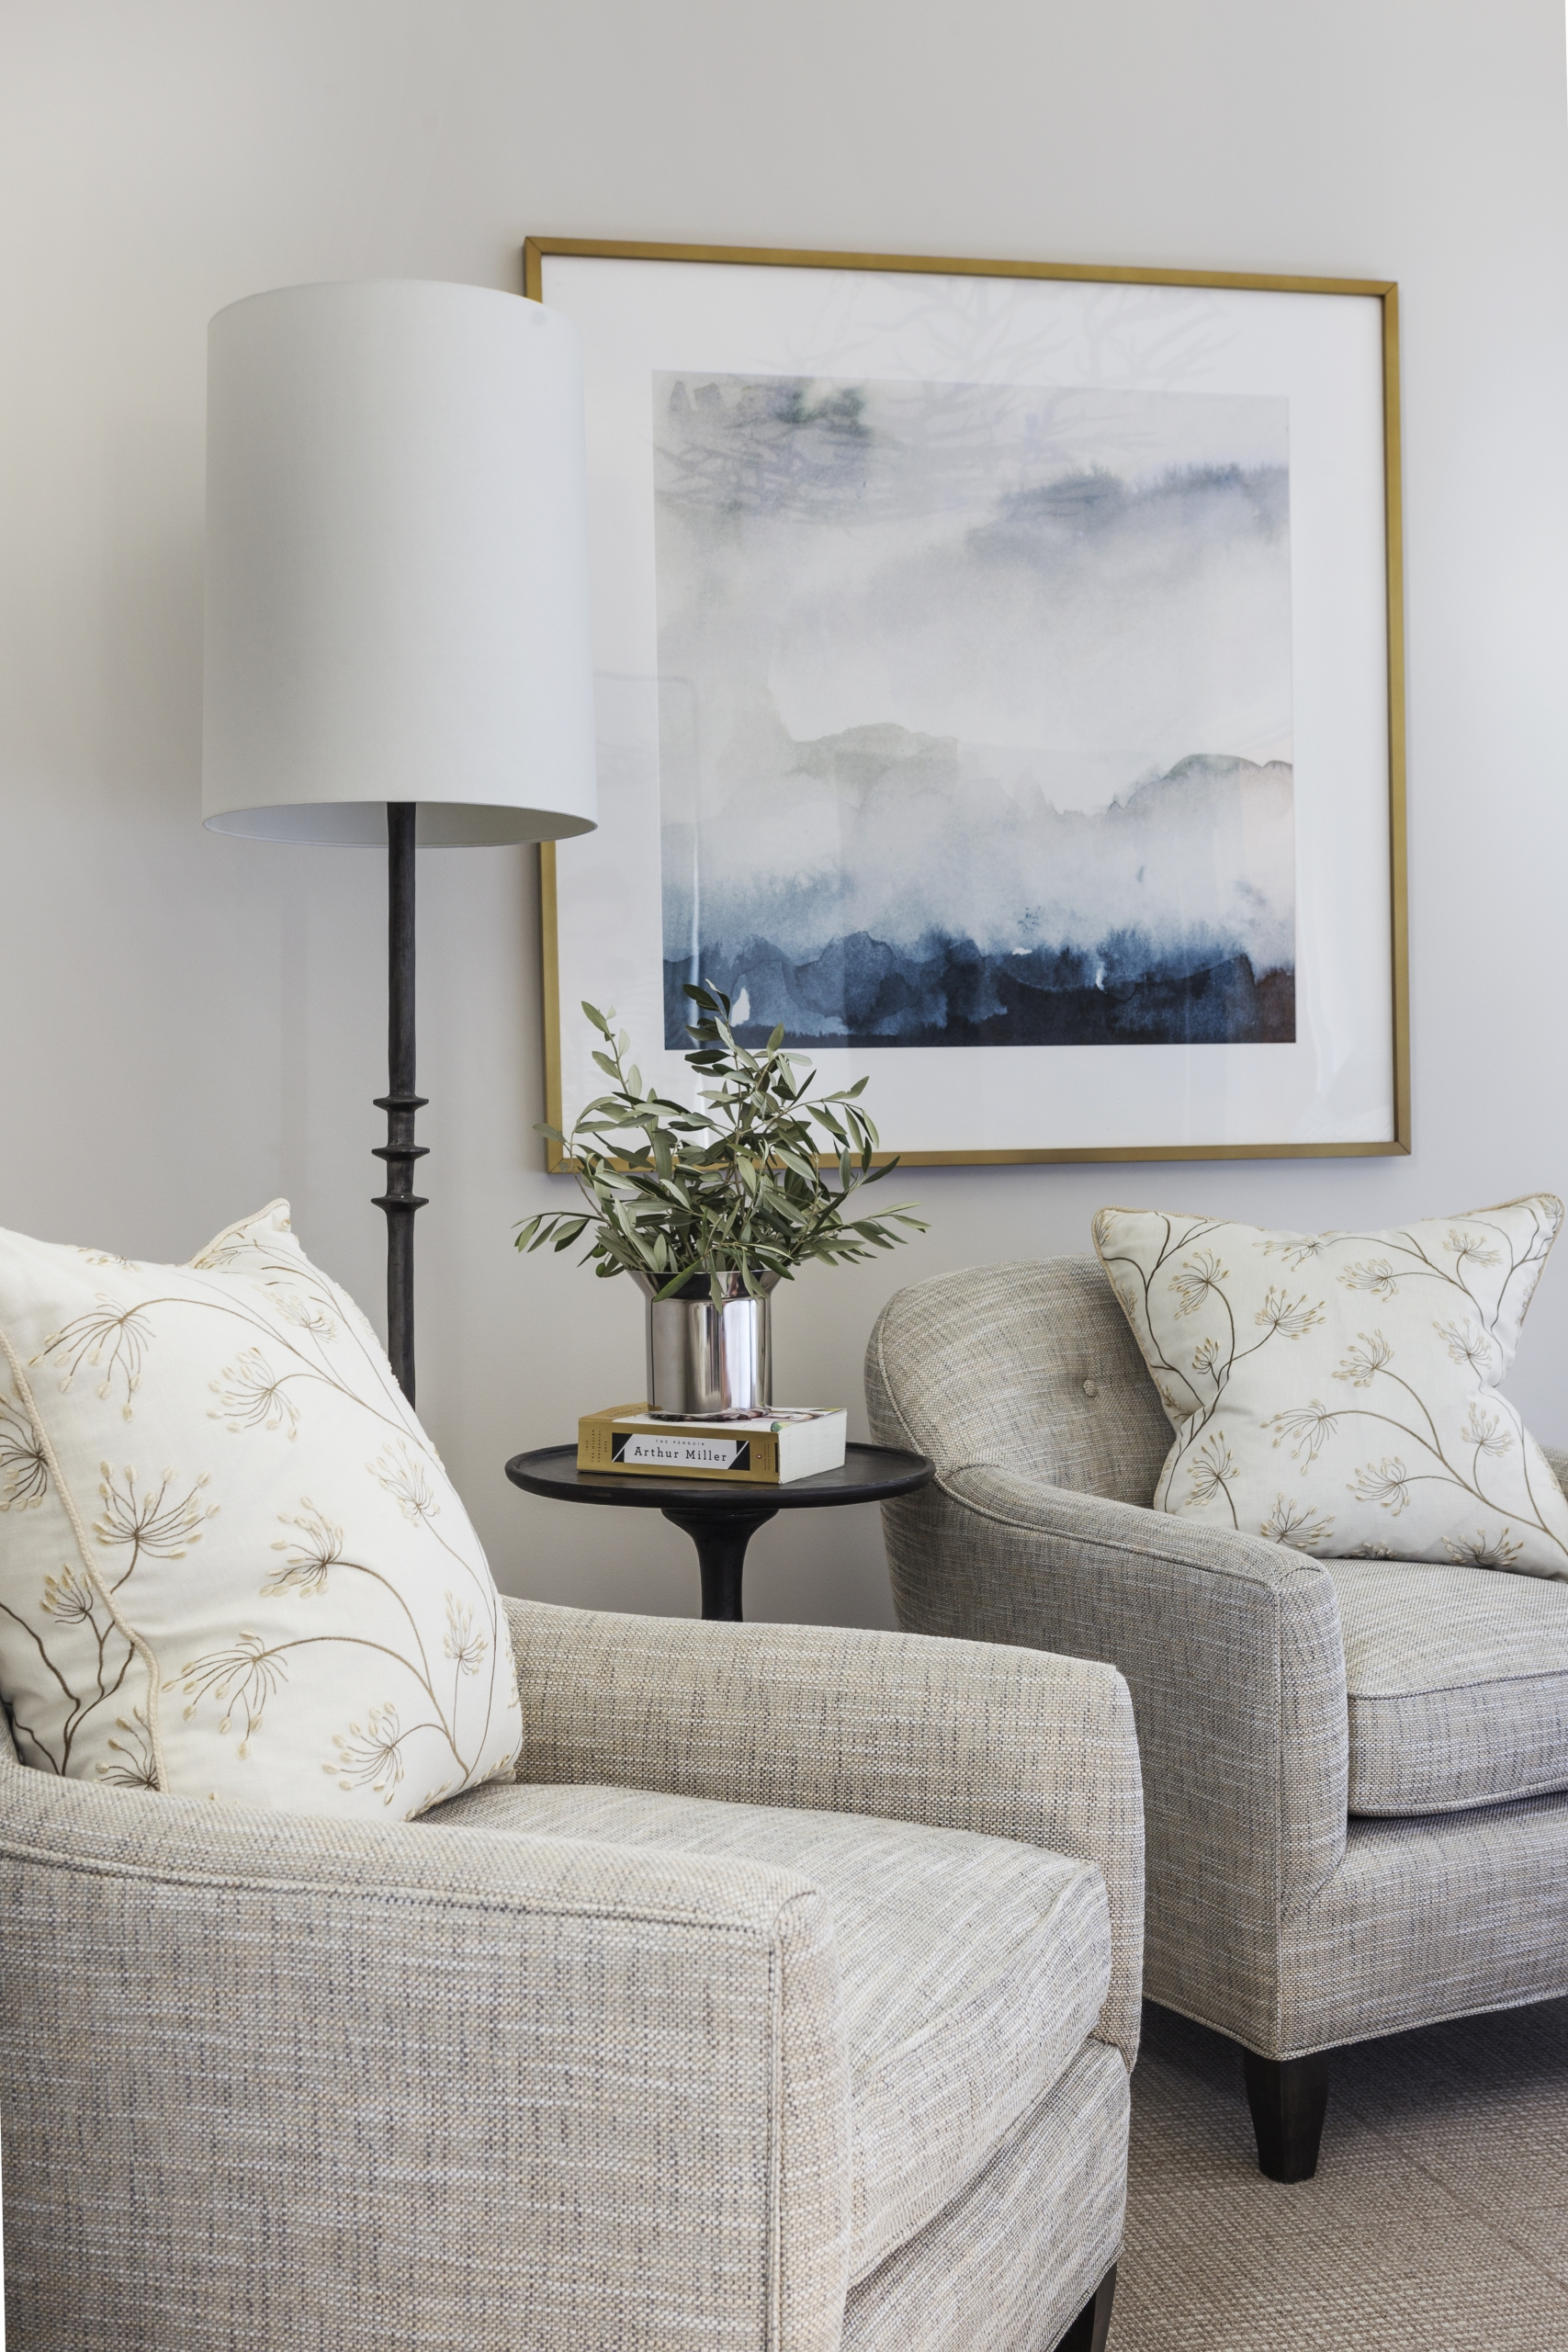 St Helena Boutique sitting room with absract art, chairs, and lighting